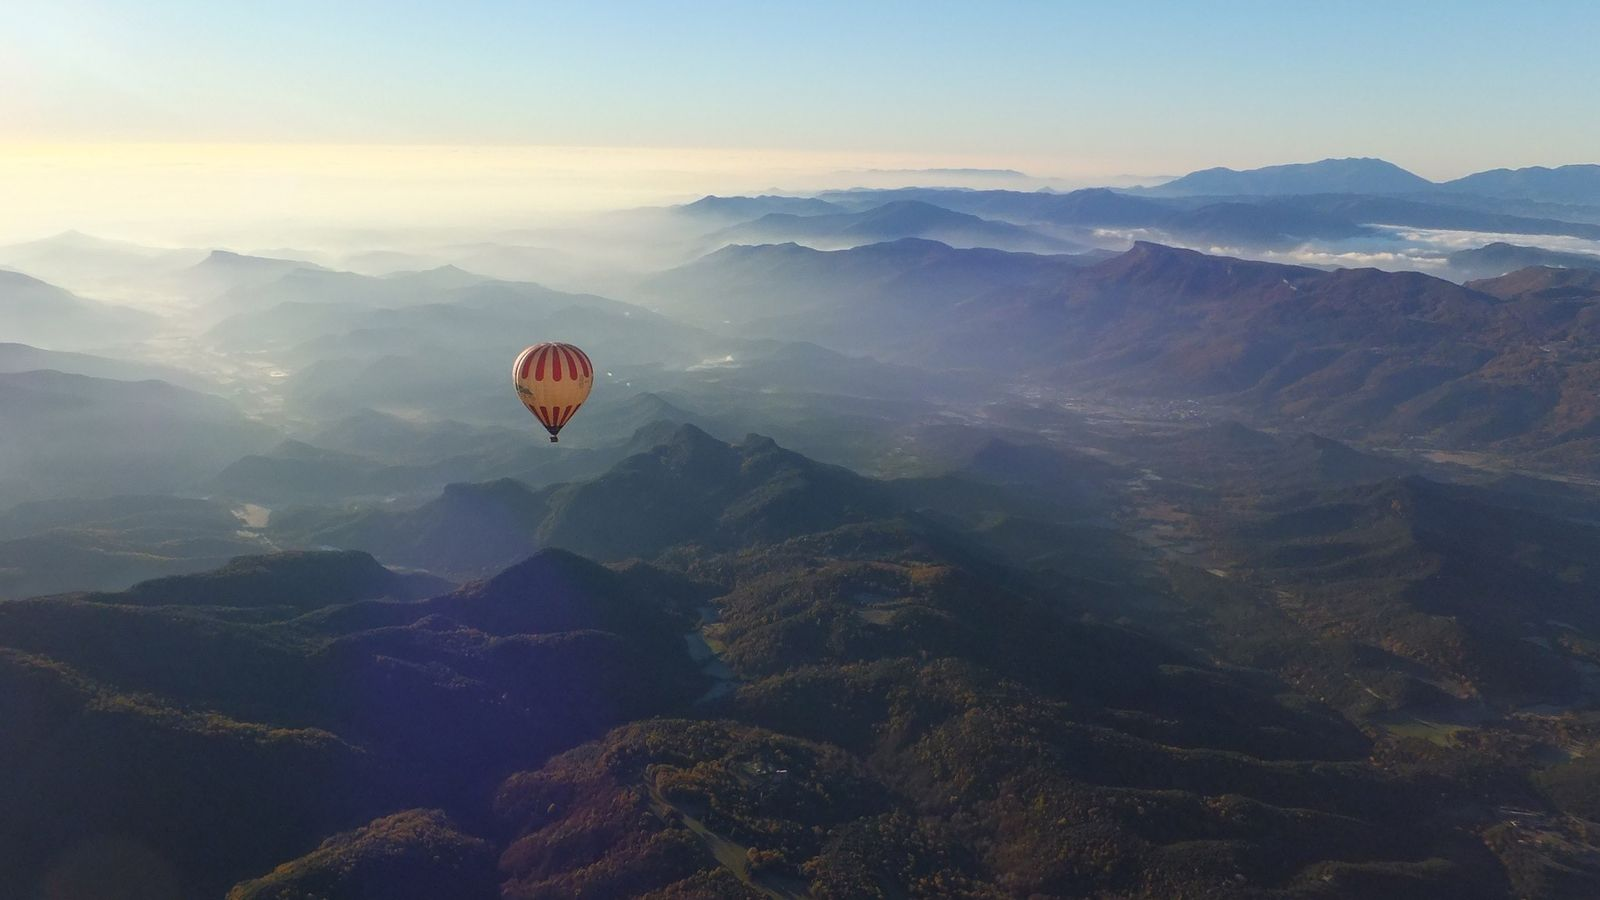 Hot-air ballon riders take in the scenic views of Garrotxa Volcanic Natural Park Catalonia.